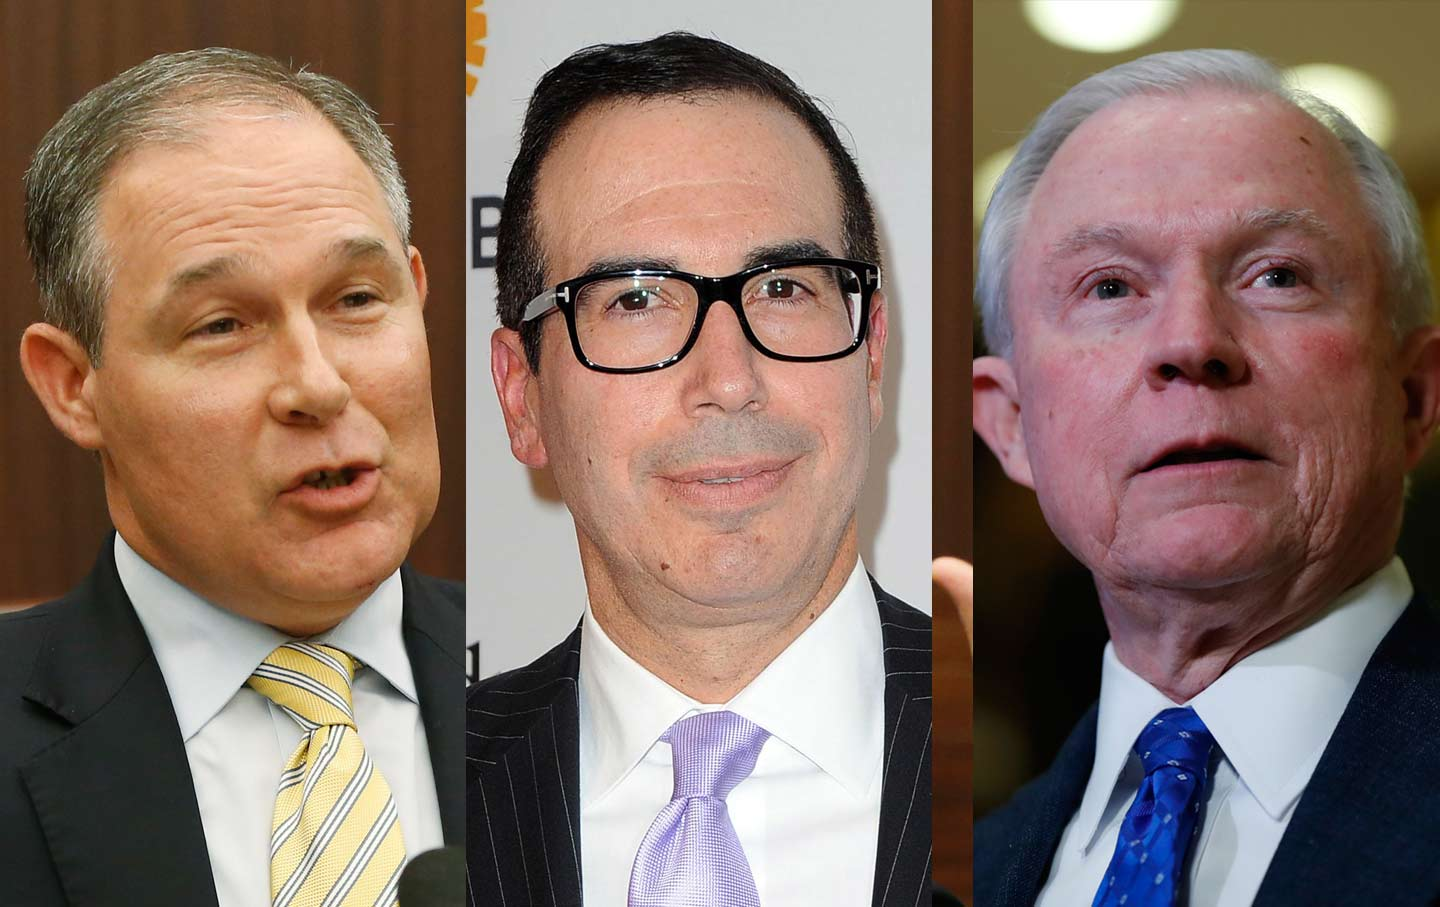 Scott Pruitt, Steven Mnuchin, and Jeff Sessions.